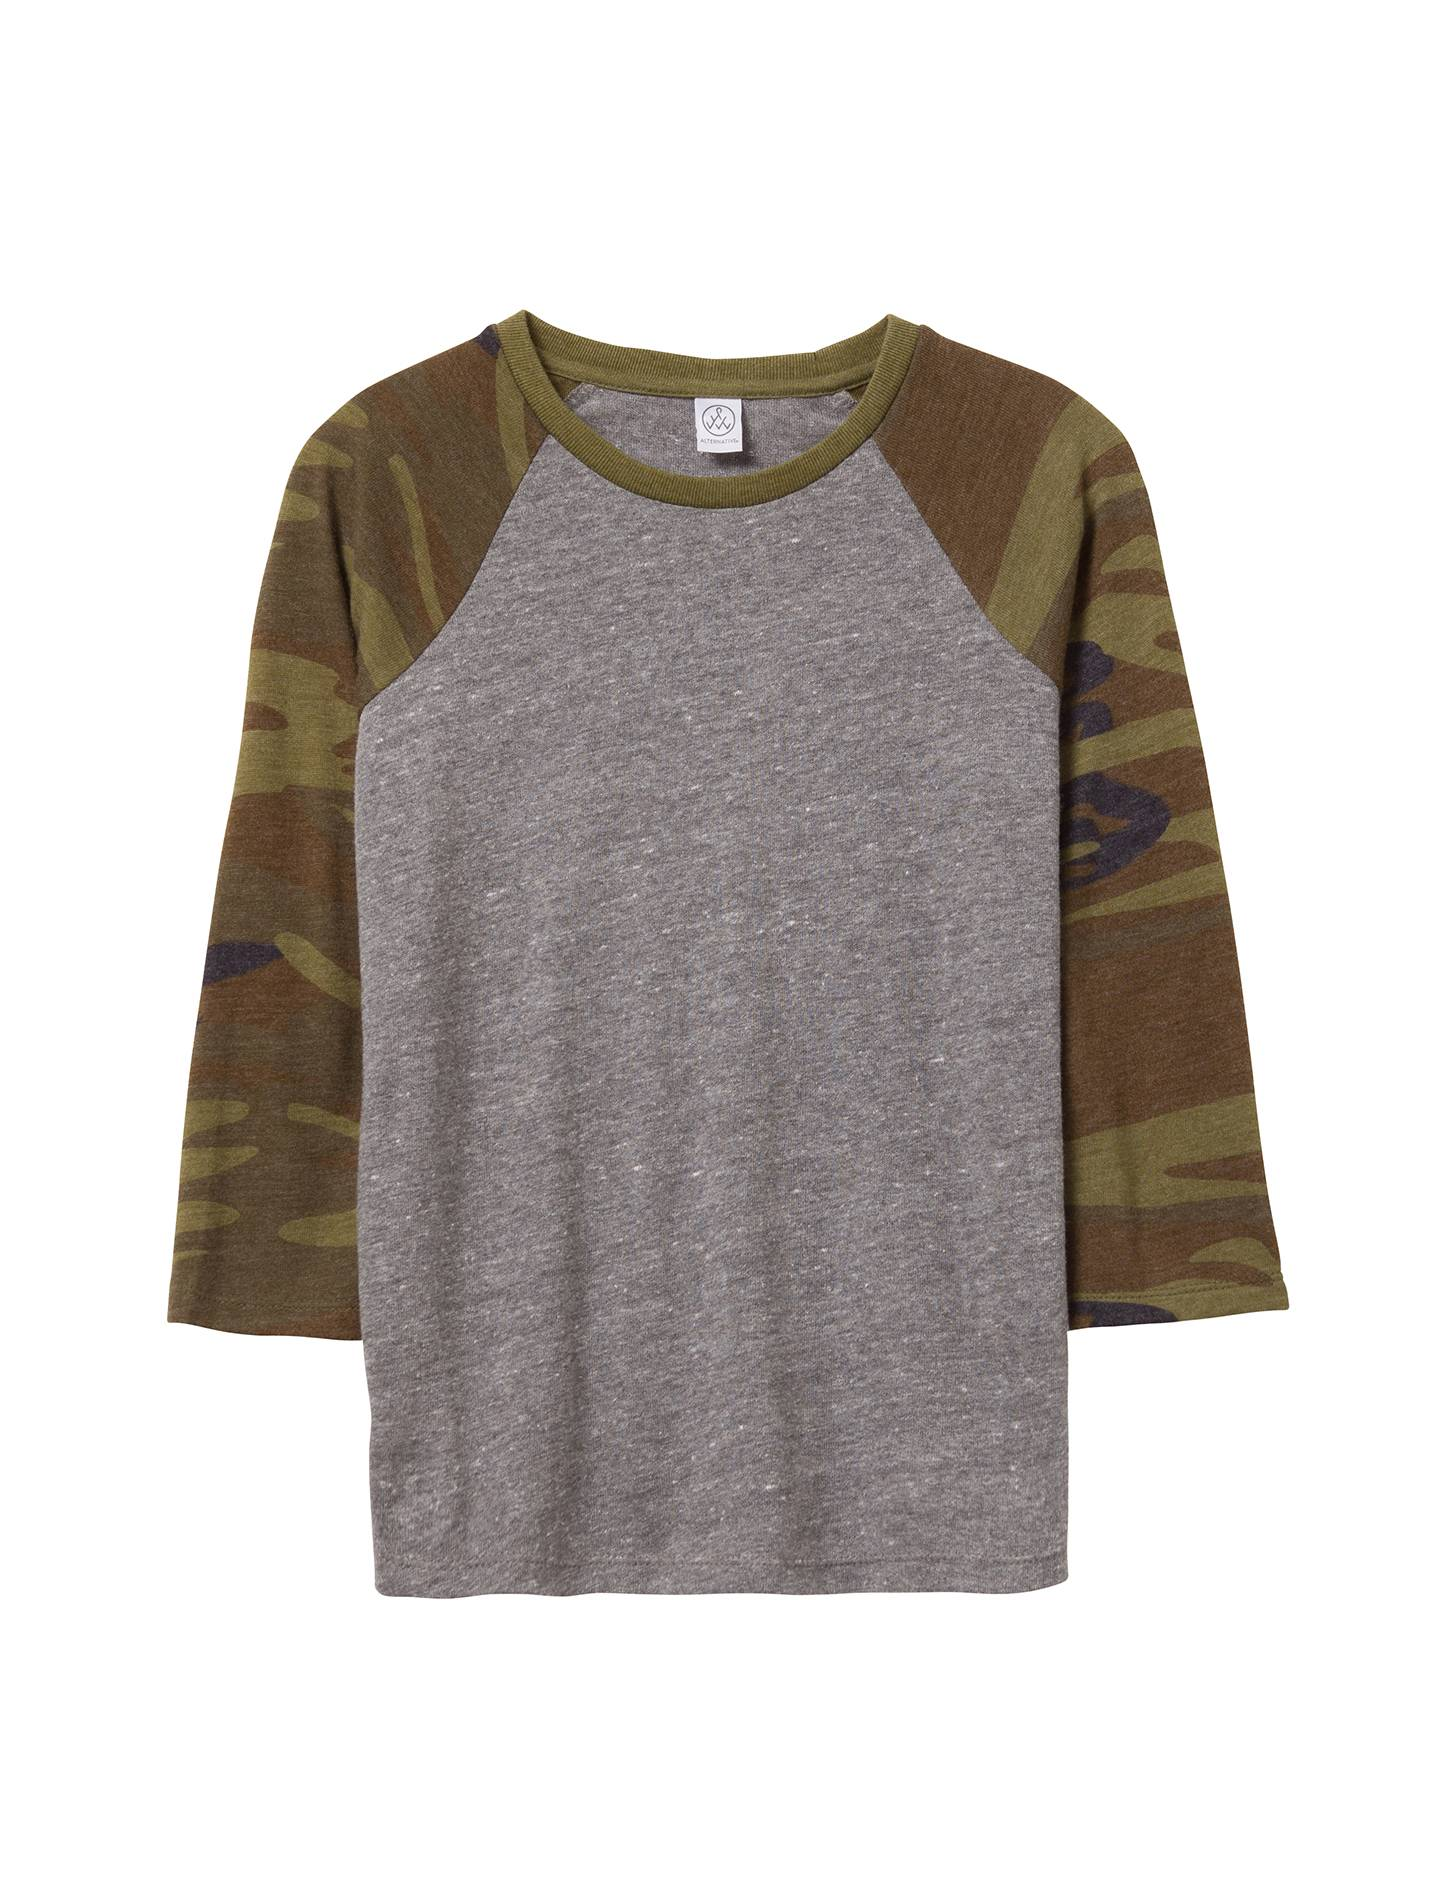 Alternative Apparel Baseball Printed Eco-Jersey Youth T-Shirt - Eco Grey & Camouflage Green - Size: YS